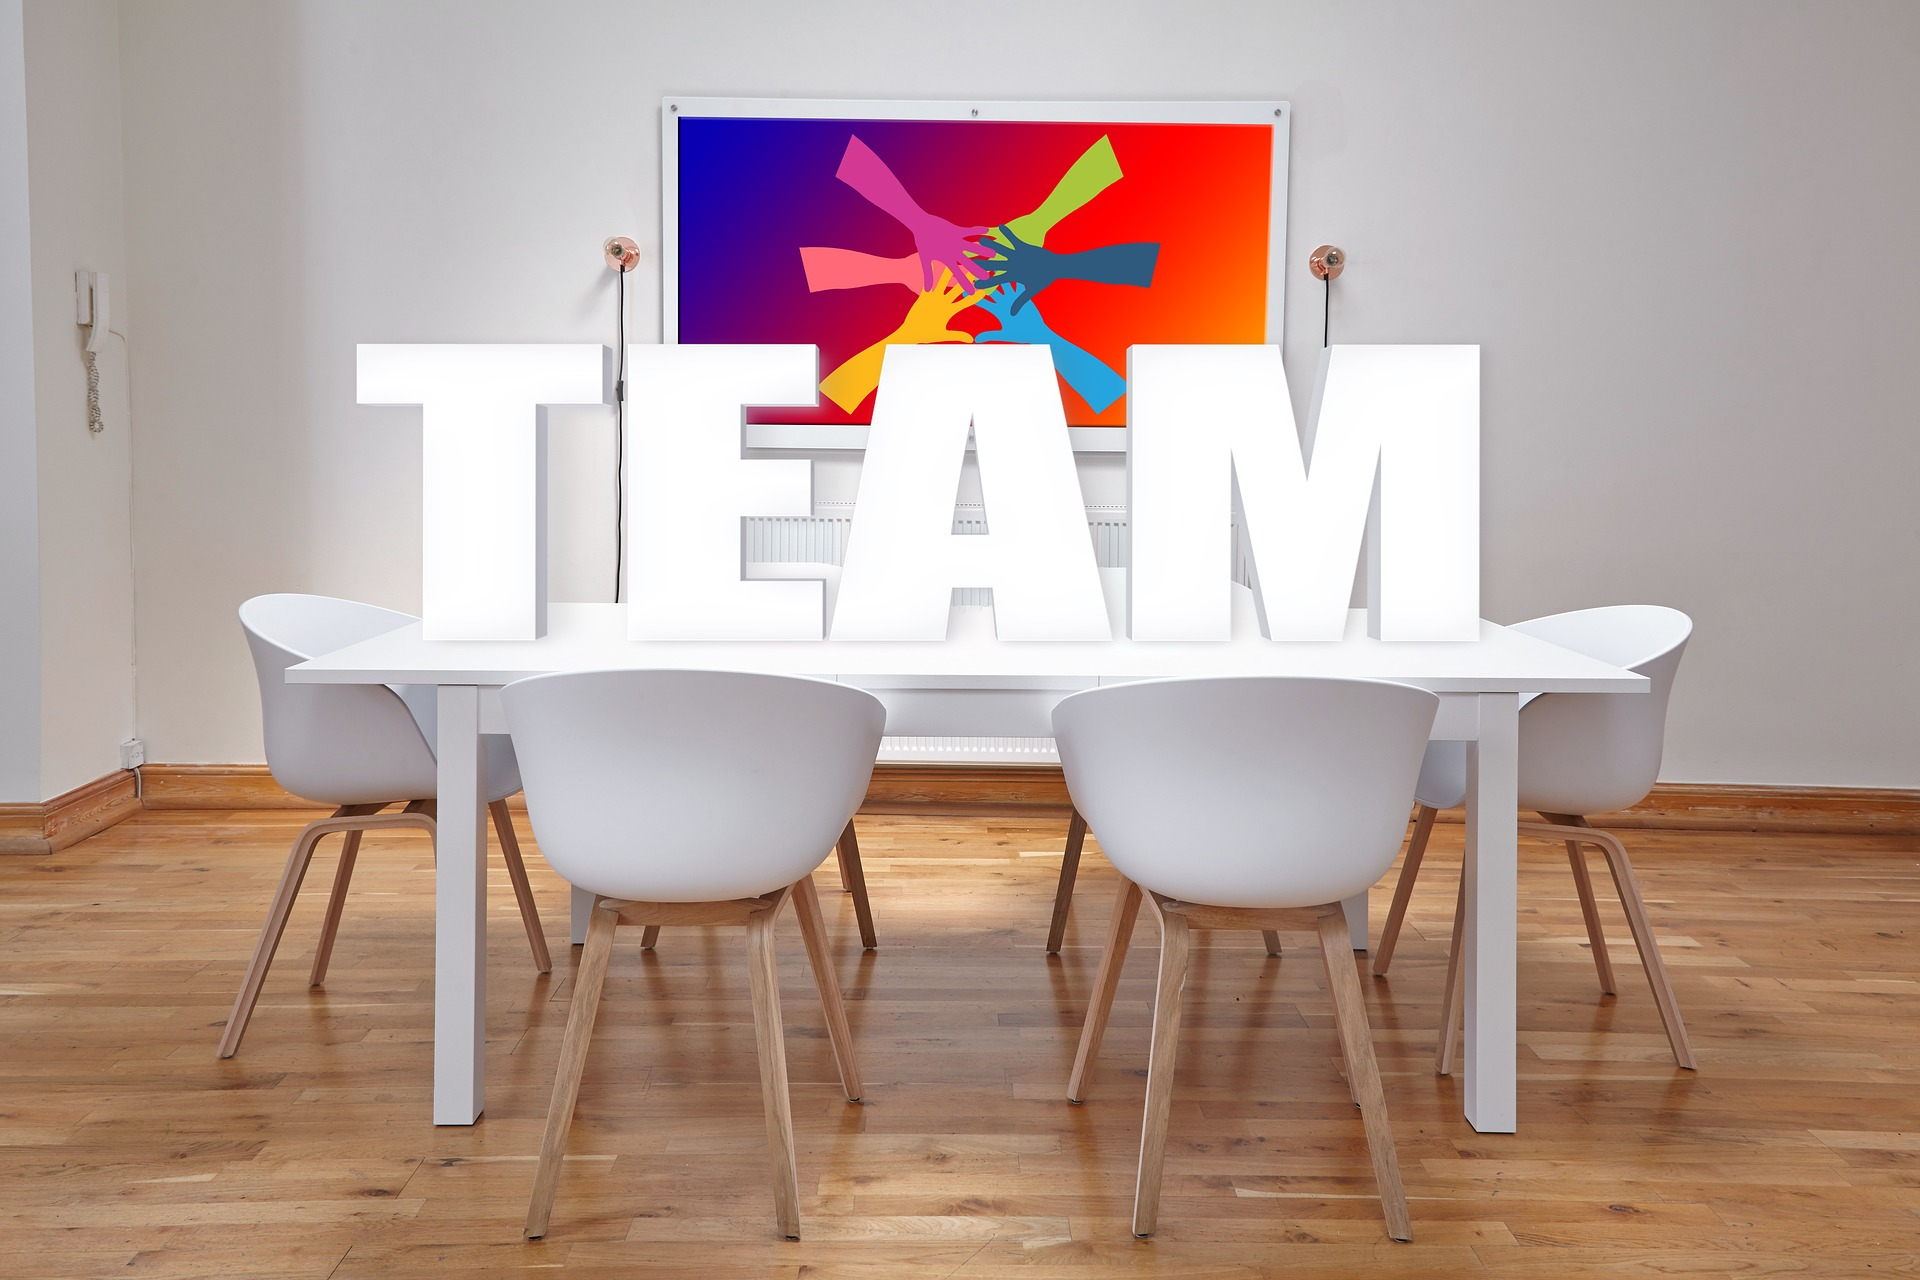 Image of meeting room with table and chairs with the word team on the table